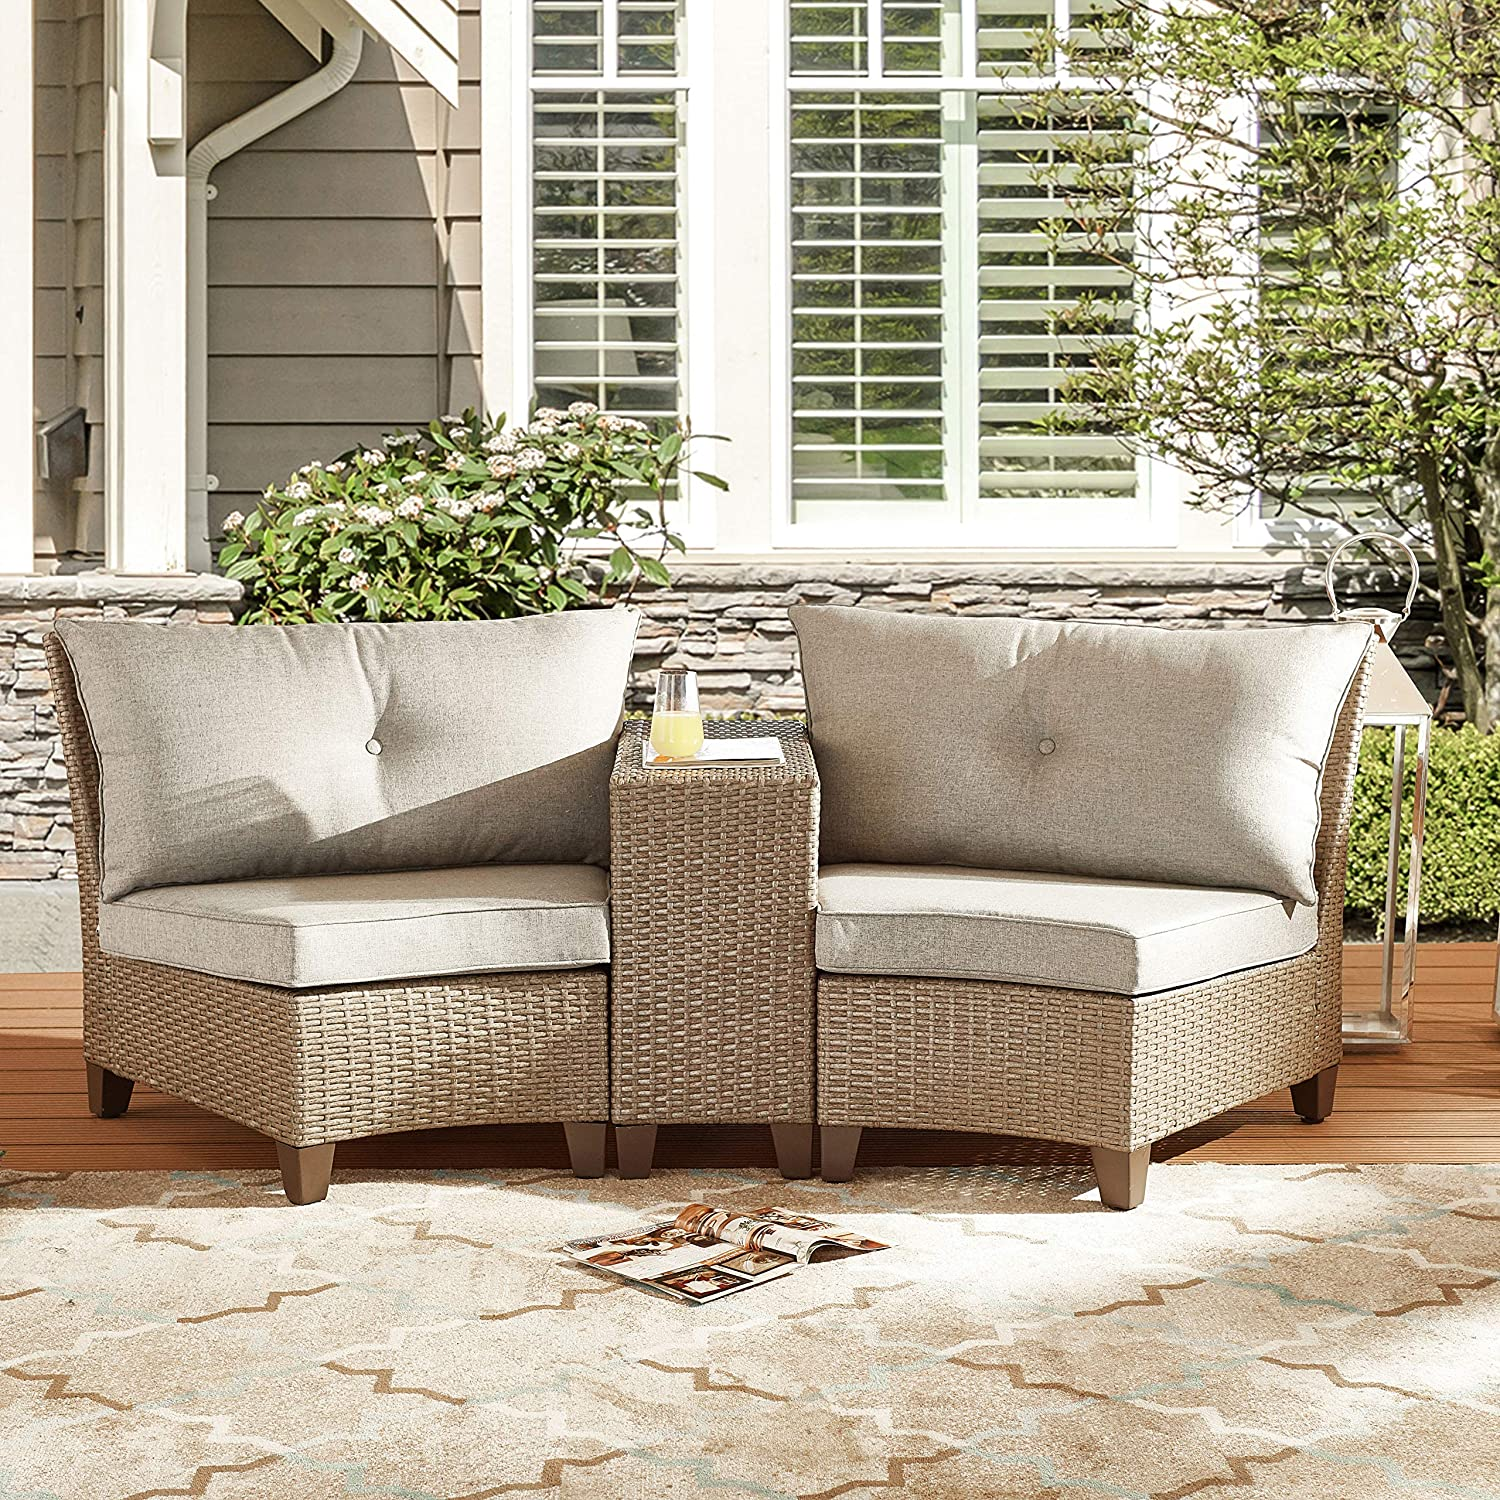 LOKATSE HOME 3-Piece Outdoor Wicker Rattan Sofa Furniture Patio Half-Moon Sectional Woven Conversation Set with Removable Grey Cushions, Brown